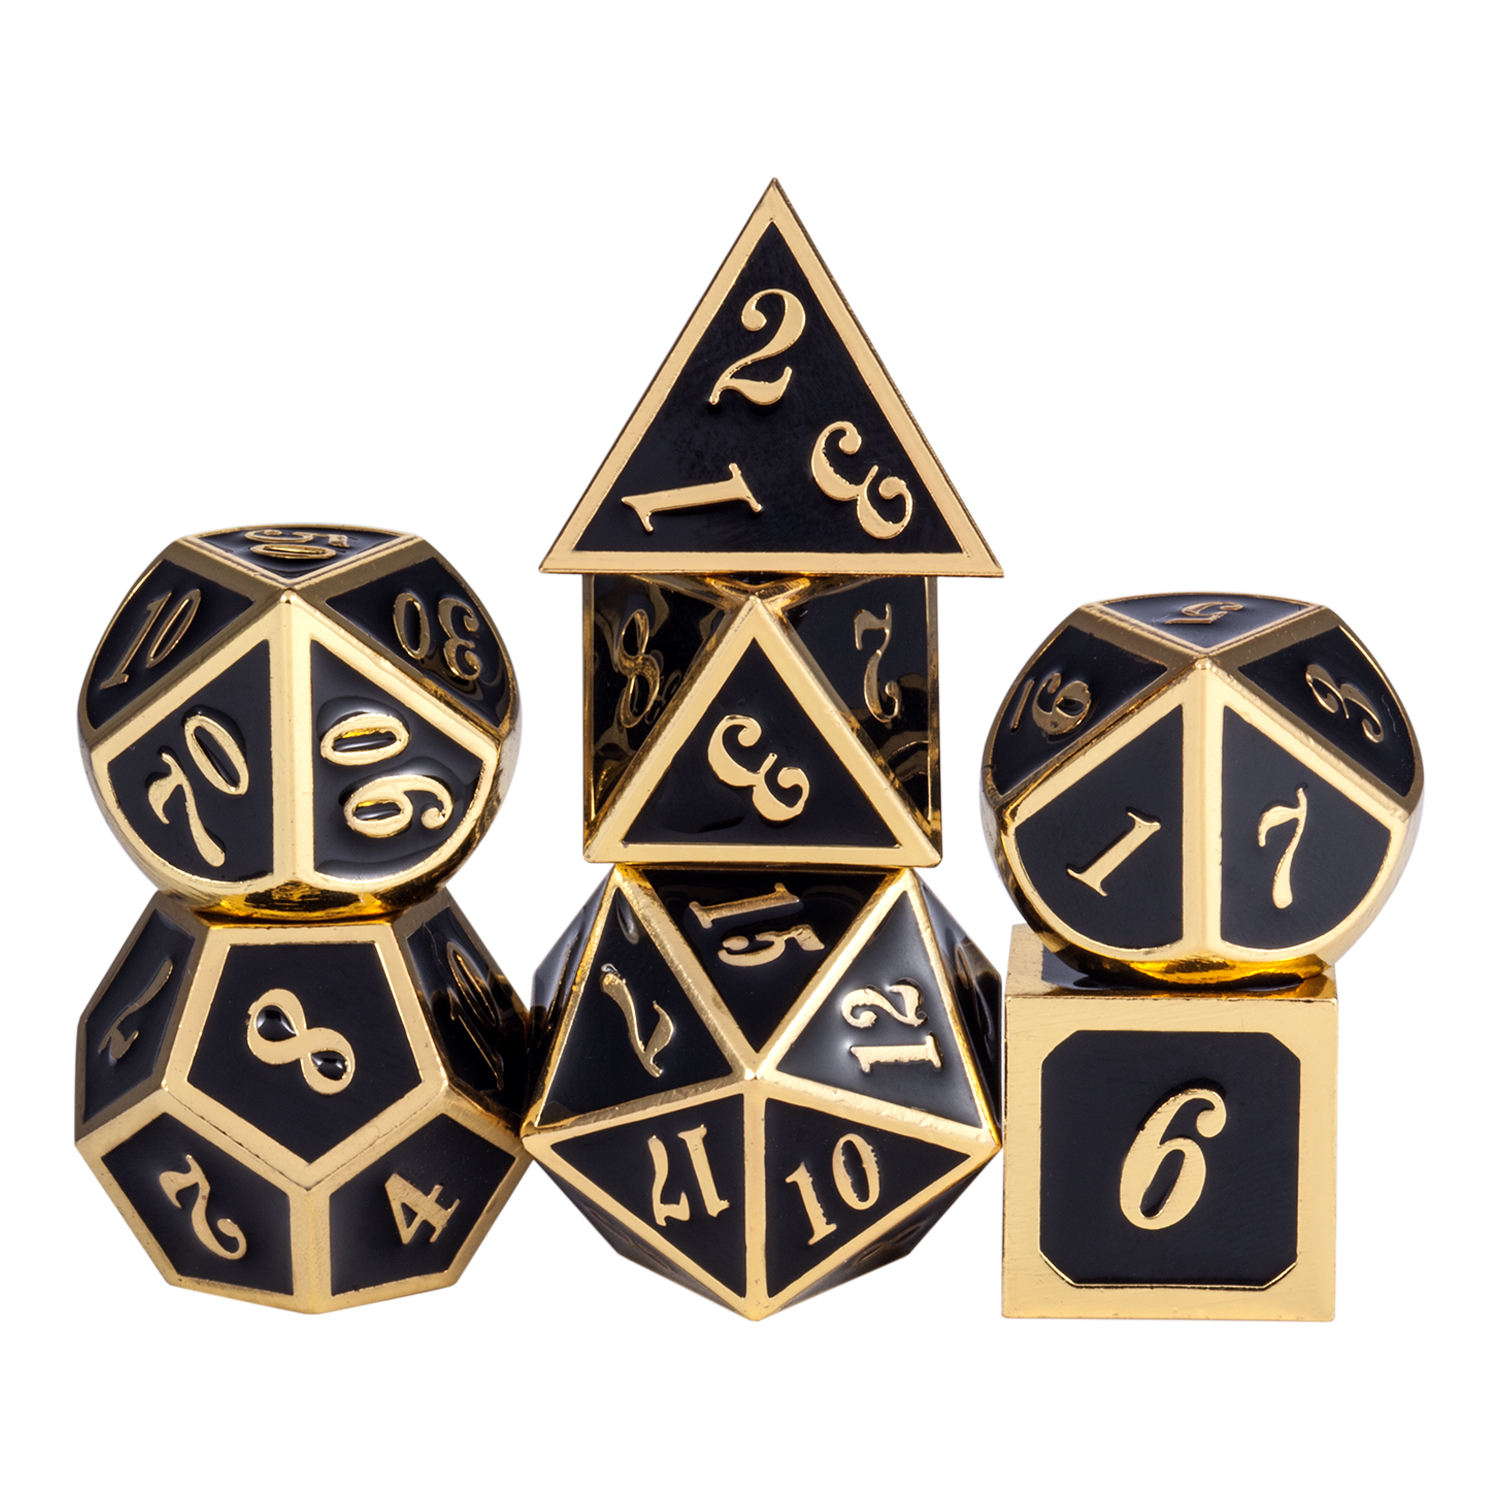 Metal dice Hot Sale Black Gold DND Metal Dice Set for Dungeons and Dragons and Board Game